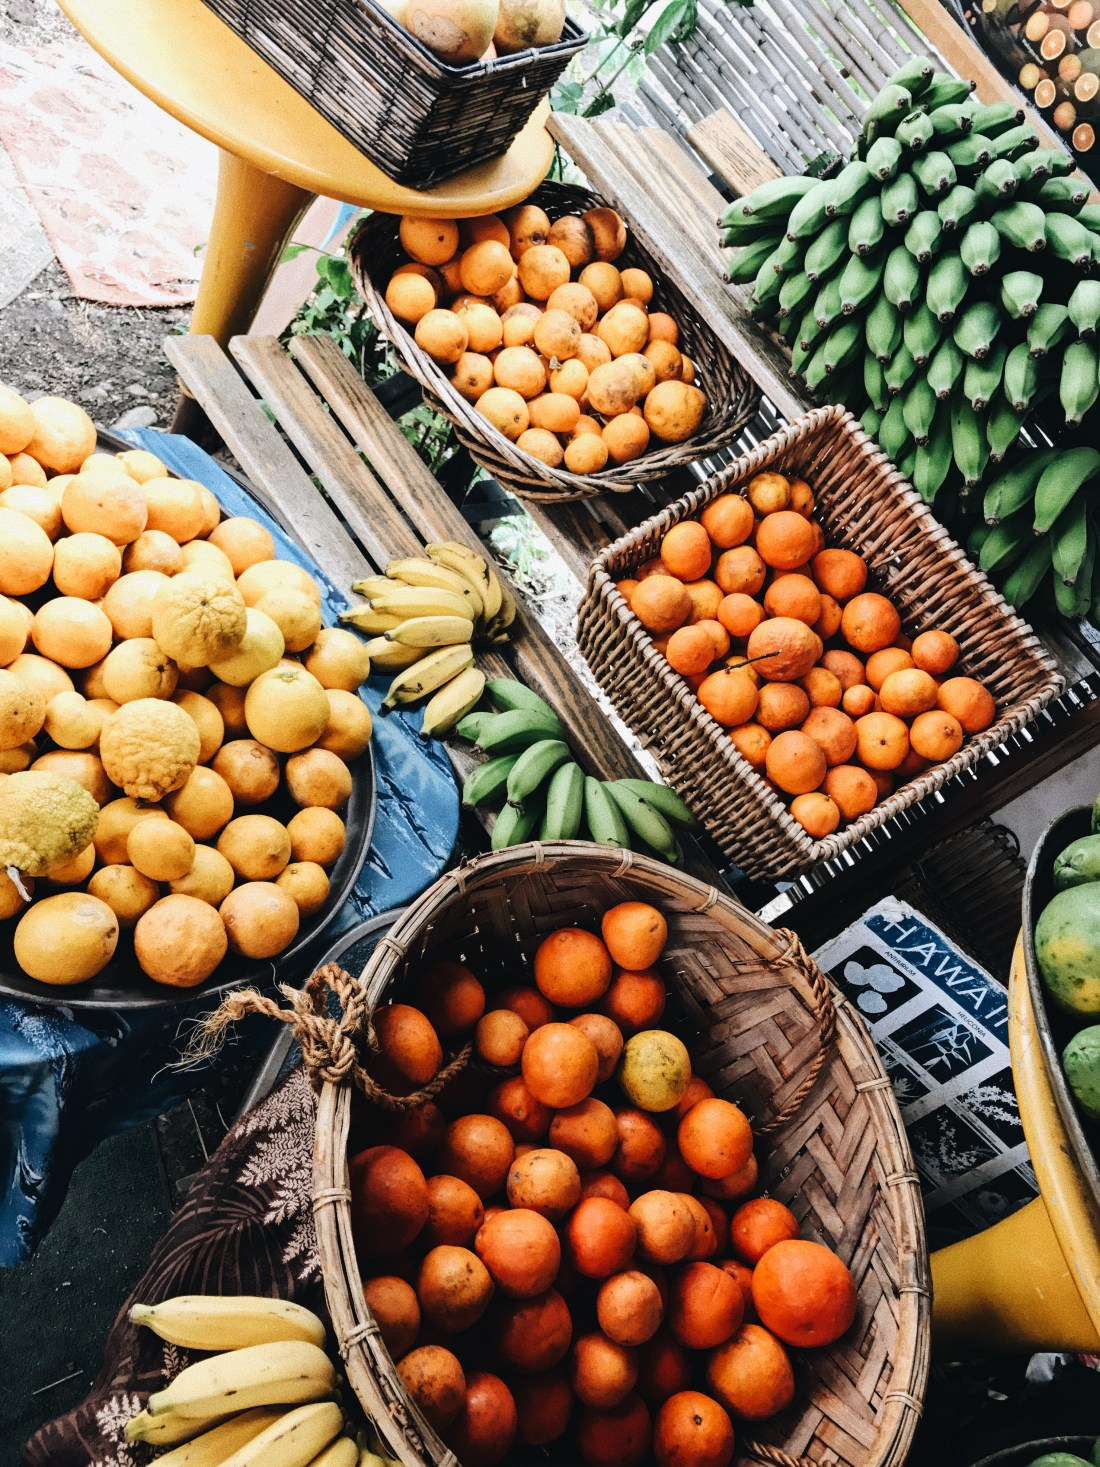 Hawaii Farm stand | Tropical Fruit stand | Fruit stand in Hawaii | Health + Fitness | Carb Cycling 101 with Fortitude Fitness via @elanaloo + elanaloo.com